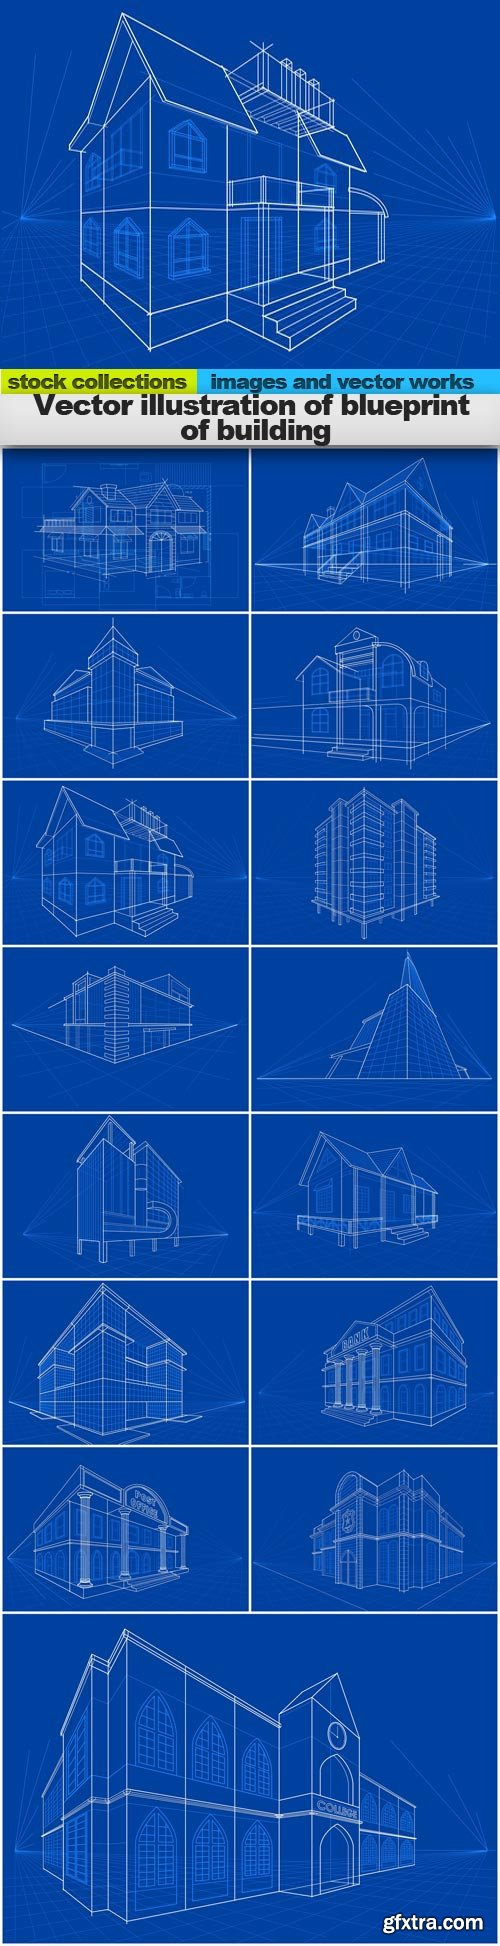 Vector illustration of blueprint of building, 15 x EPS